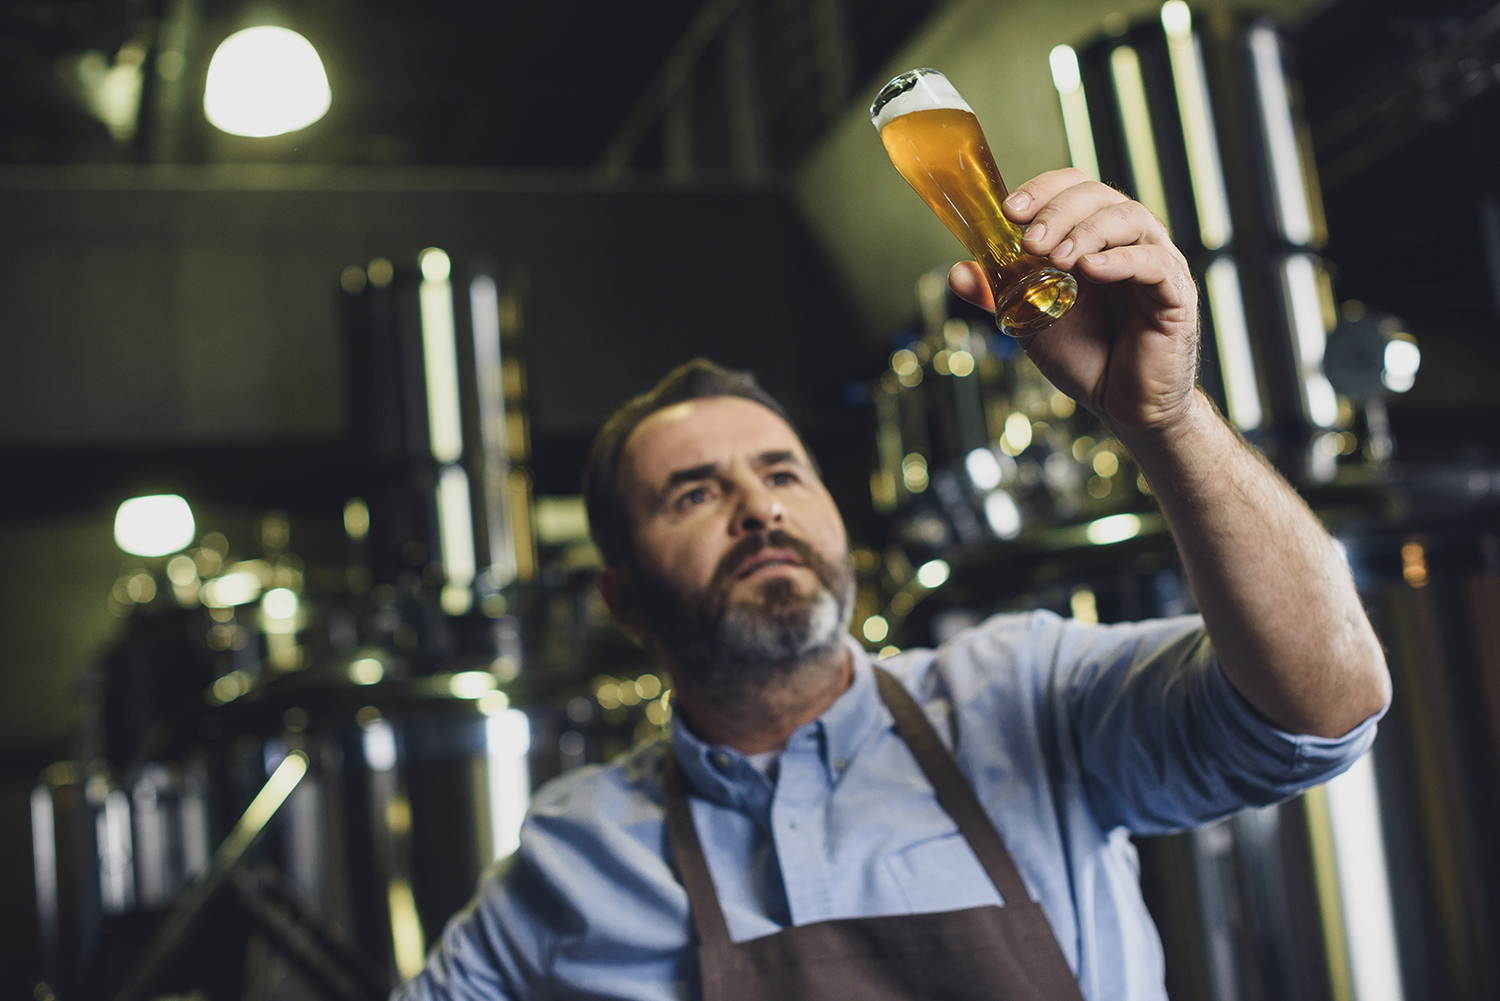 Man inspecting glass of beer at brewery